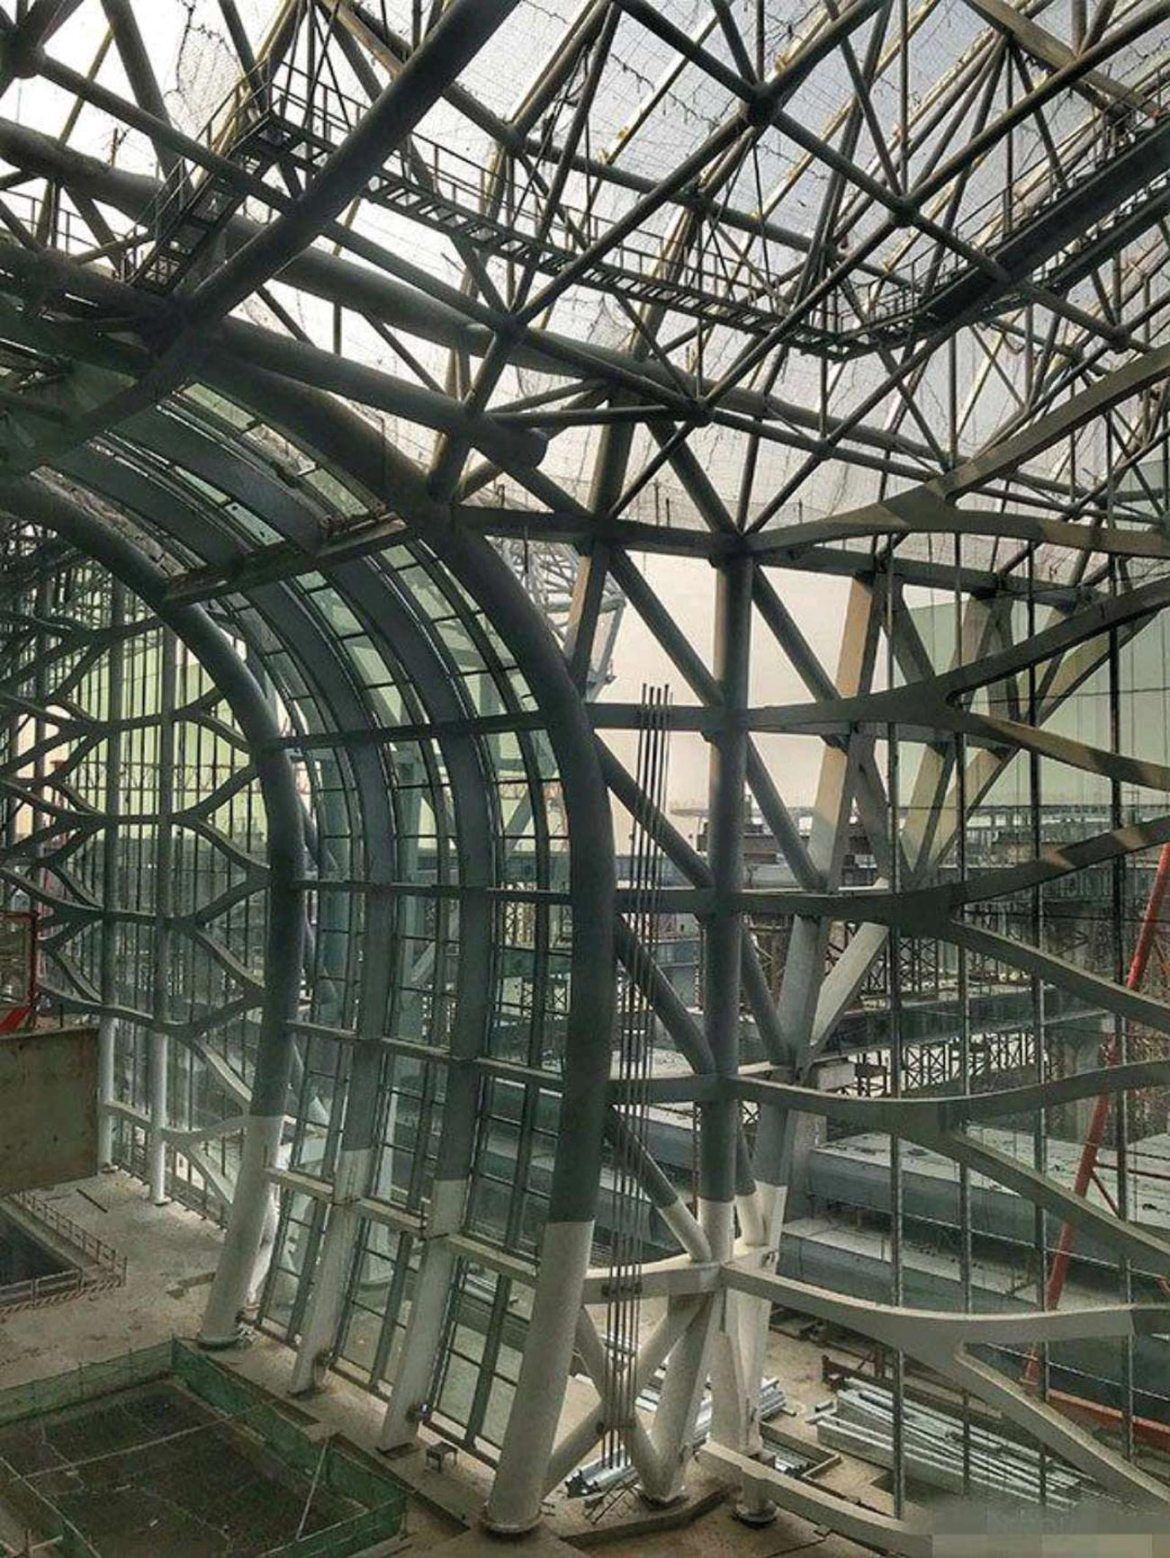 PPG STEELGUARD™ FM 550 coating, which provides up to 150 minutes of protection from cellulosic fires, coats the main steel structure of the new Beijing Daxing International Airport terminal building.